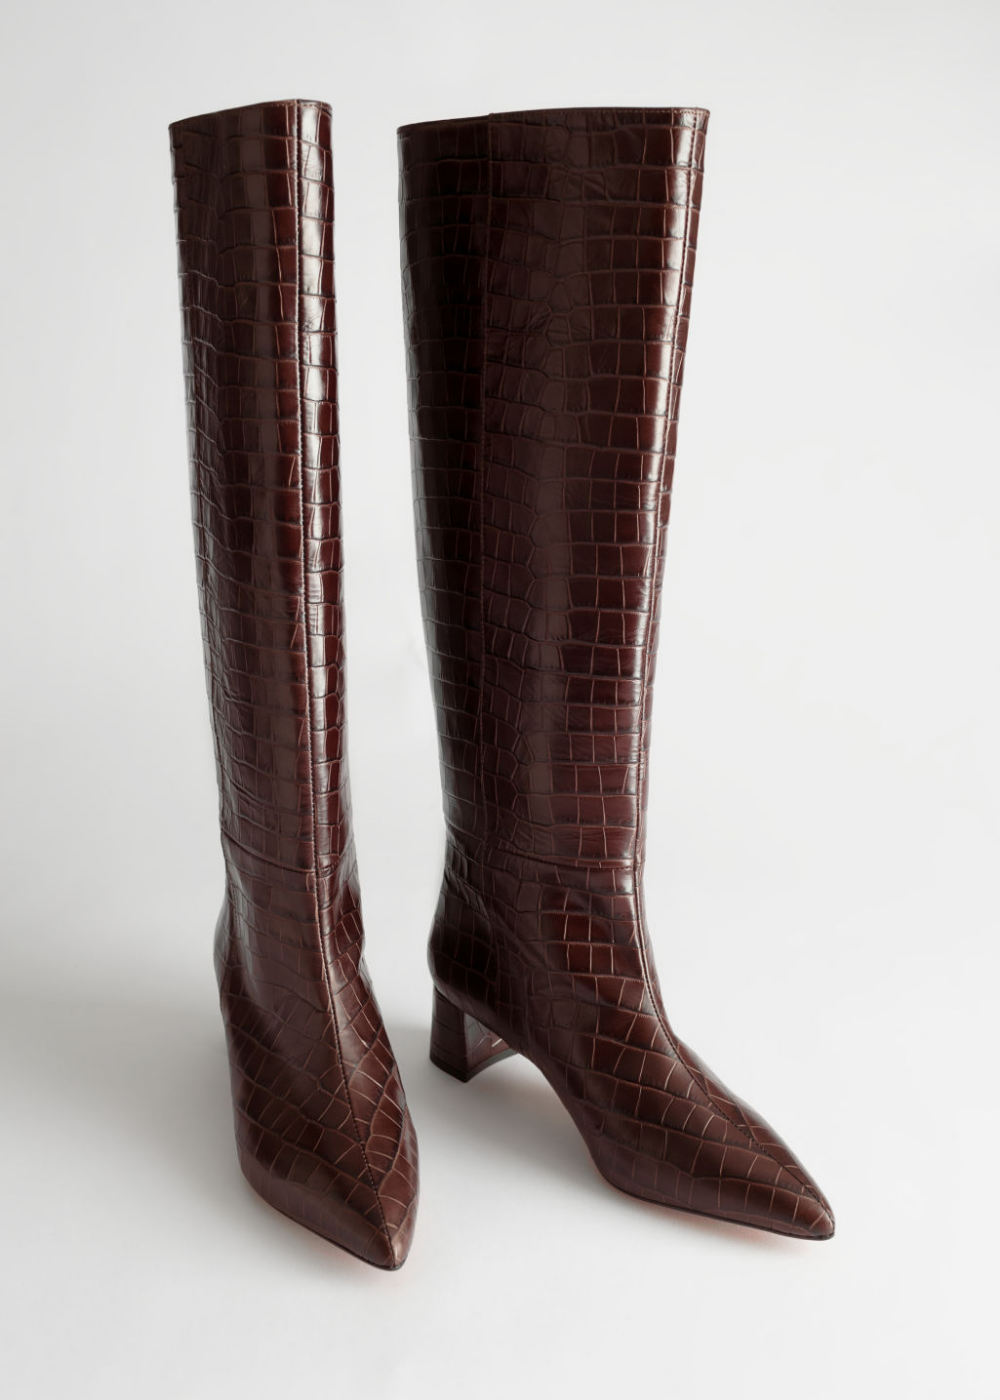 Croc Leather Knee High Boots Knee High Leather Boots Knee High Boots Kitten Heel Boots